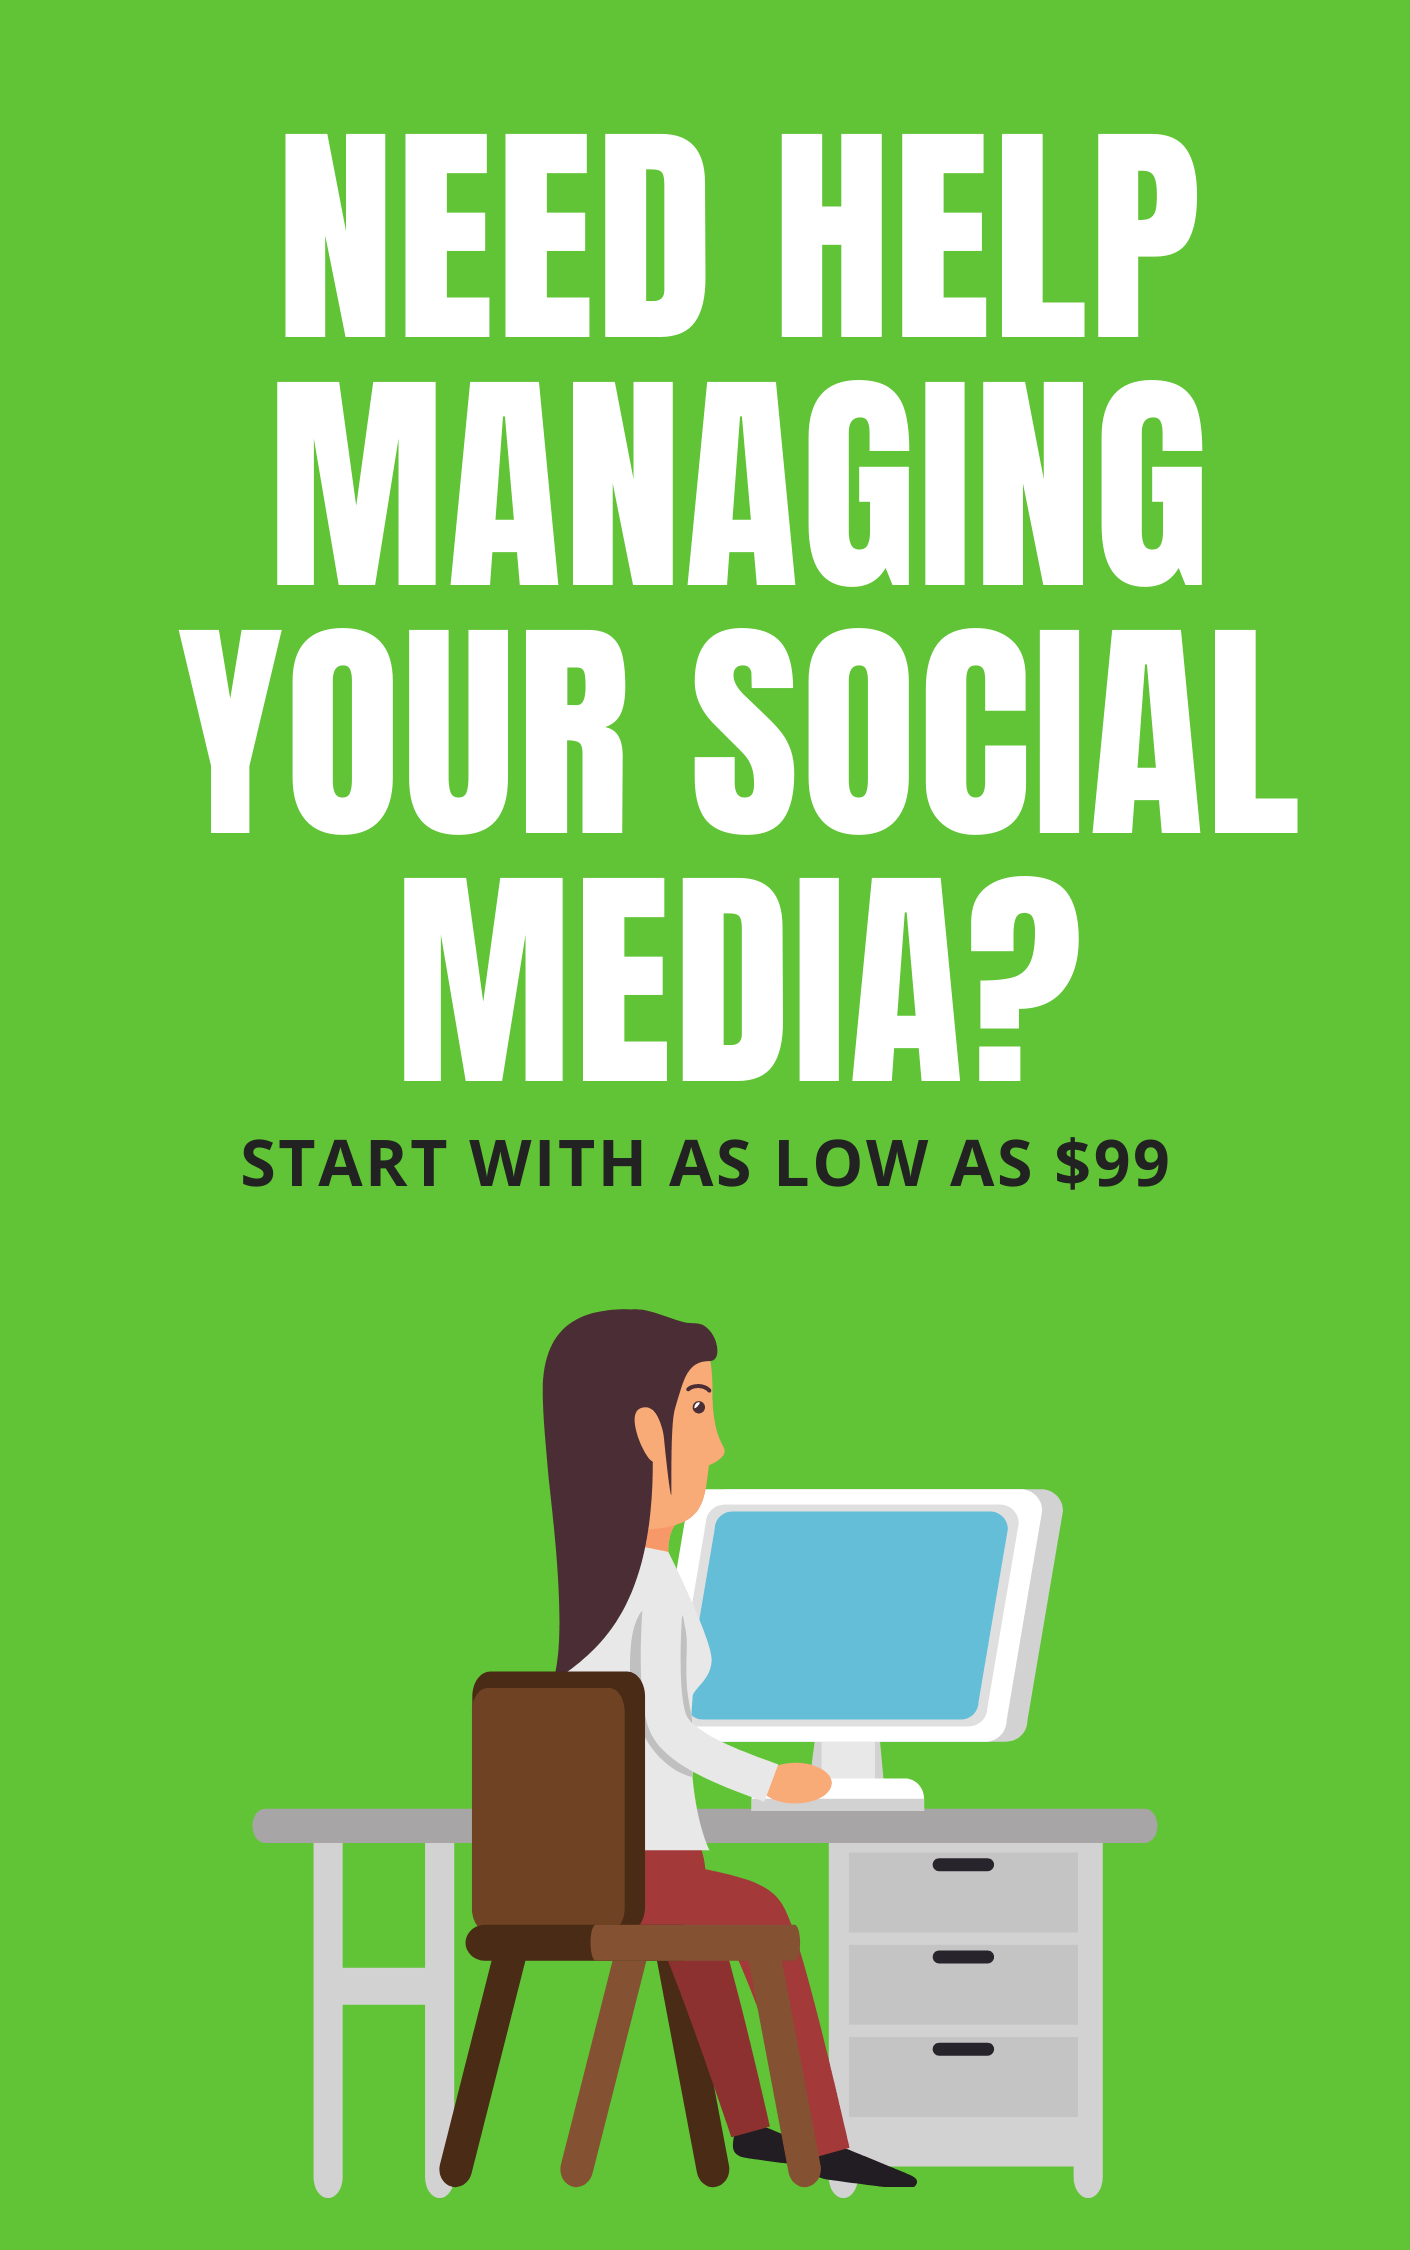 Social media management services at content clerks